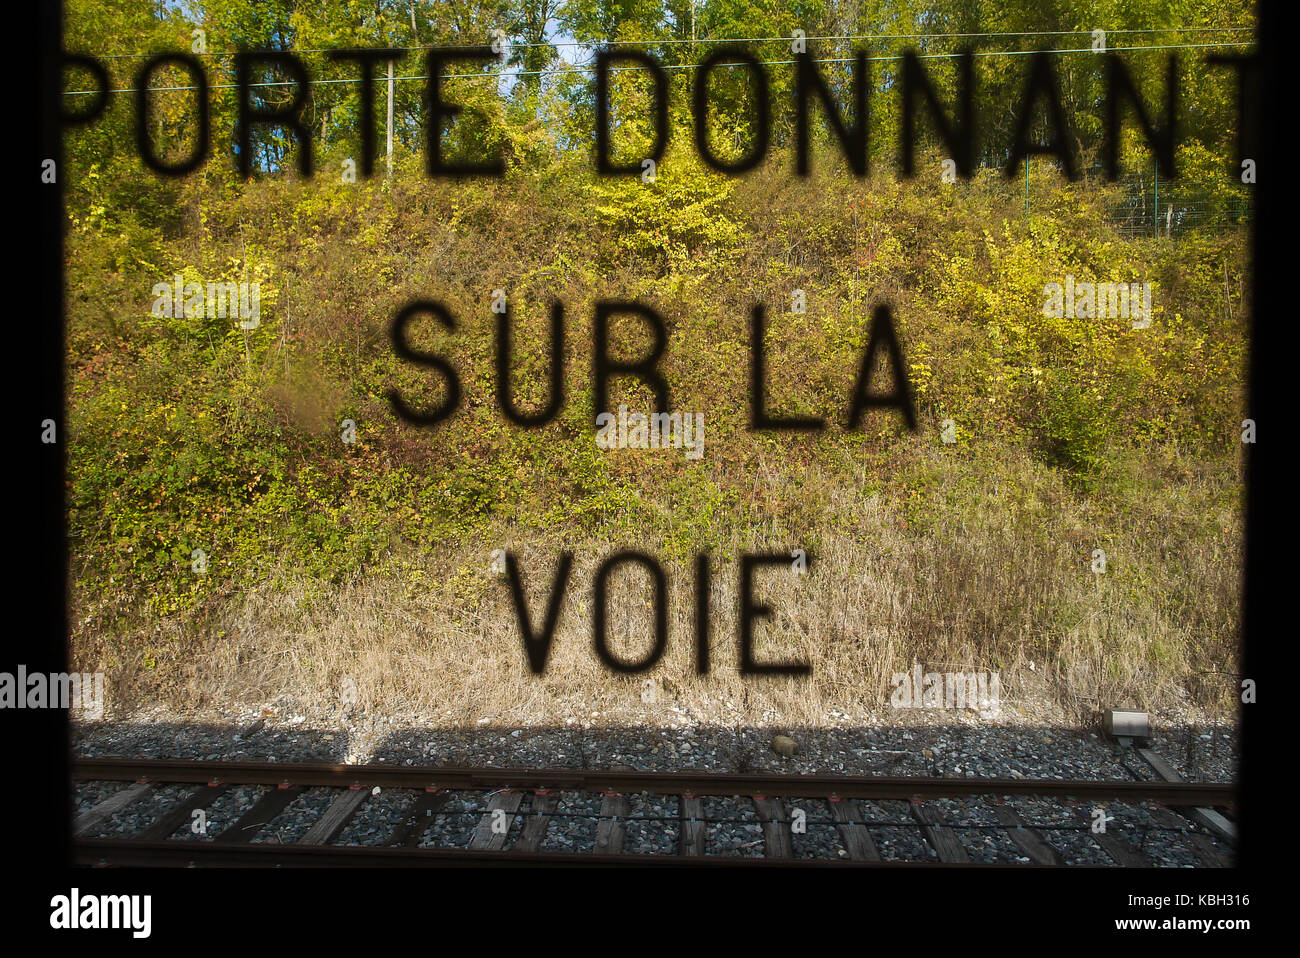 Writings on the window of a train's door, France - Stock Image